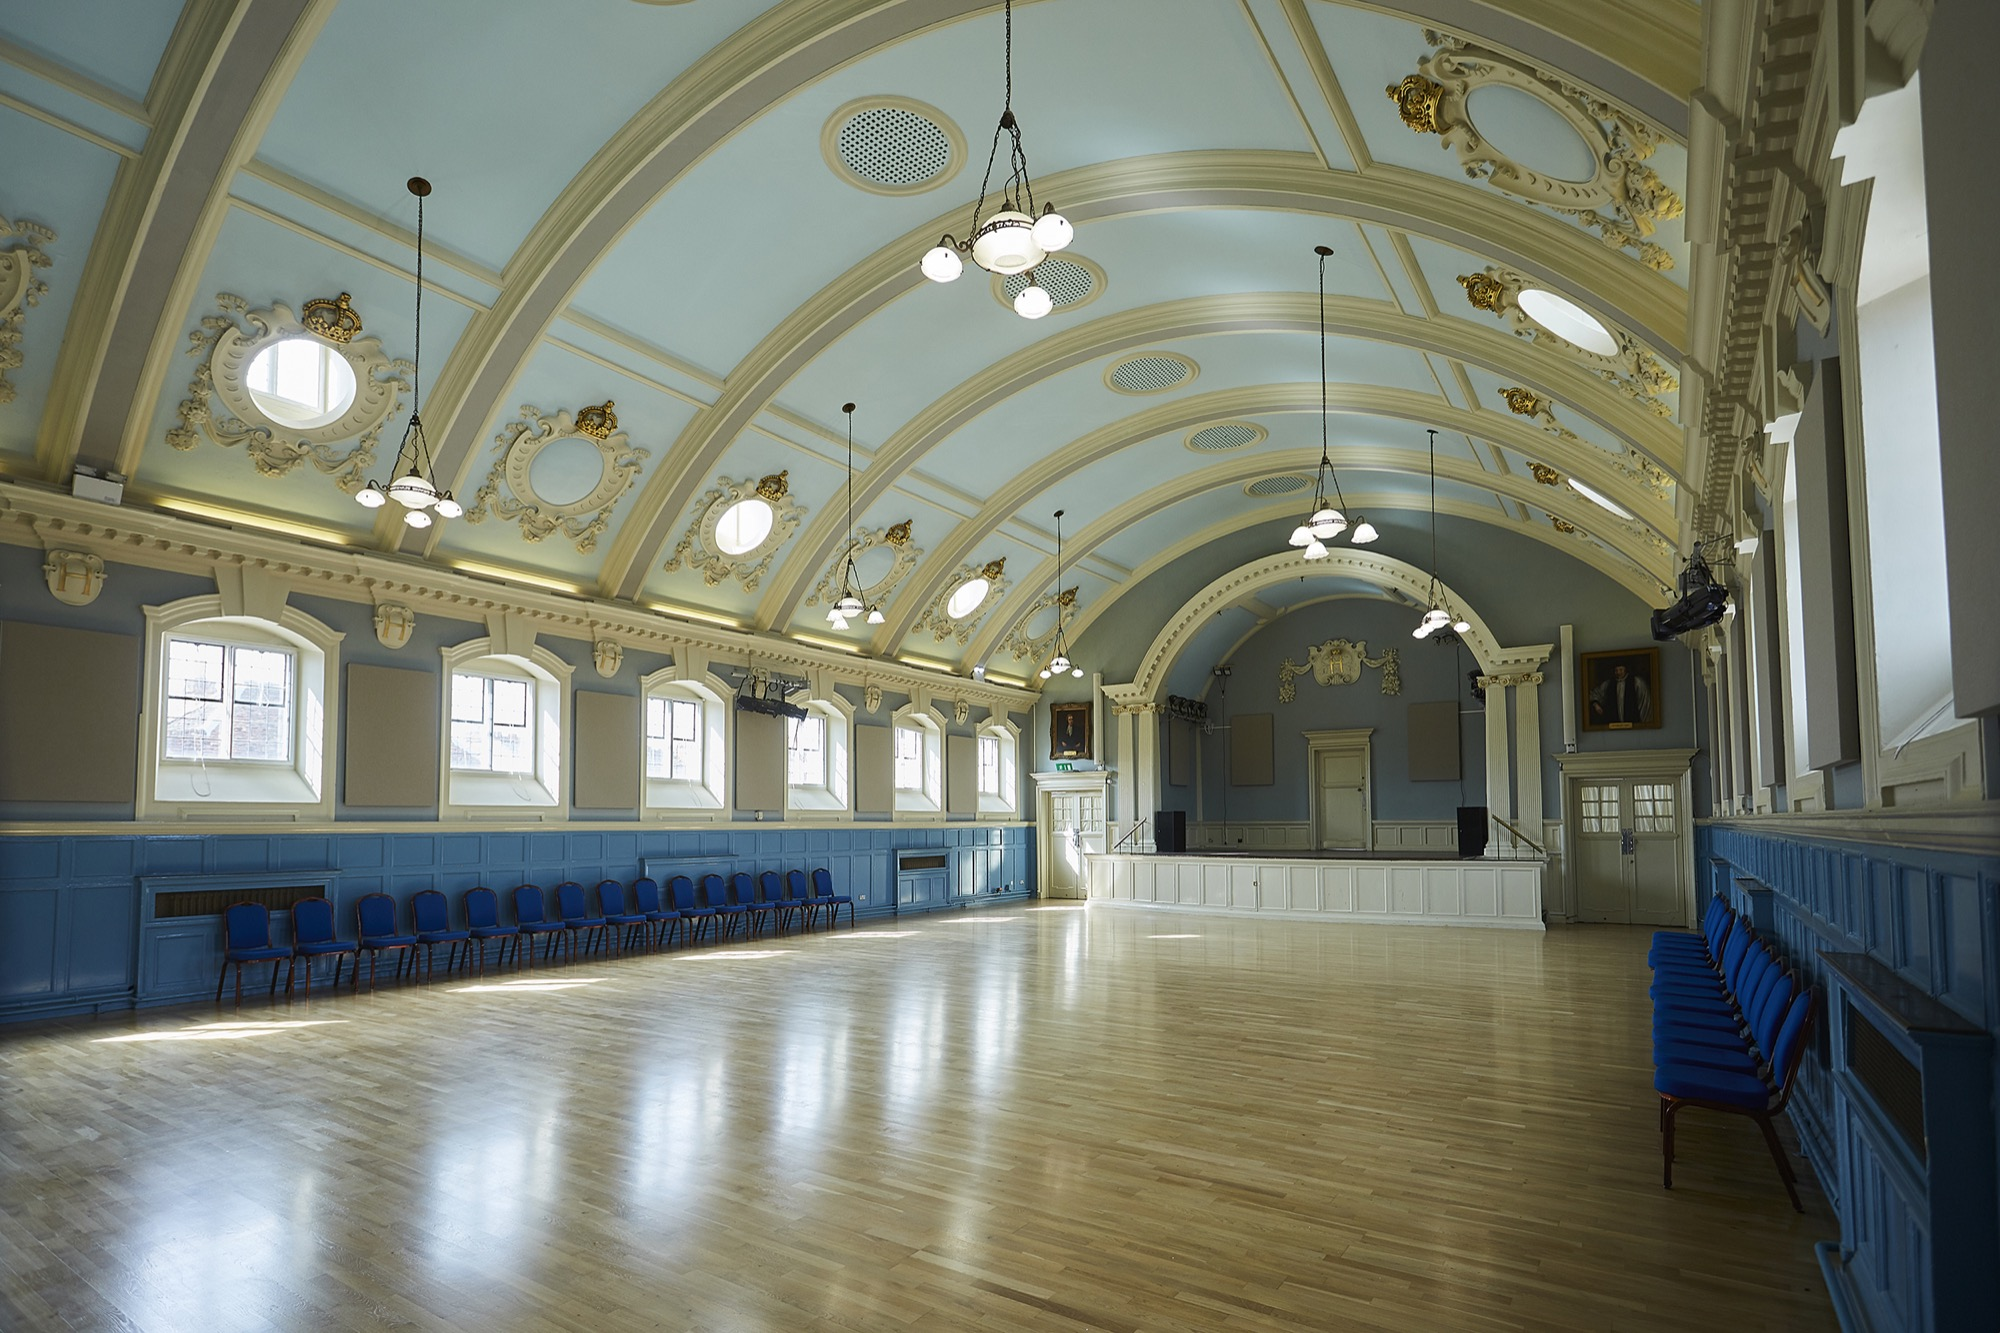 Henley Town Council - Room to hire for meetings